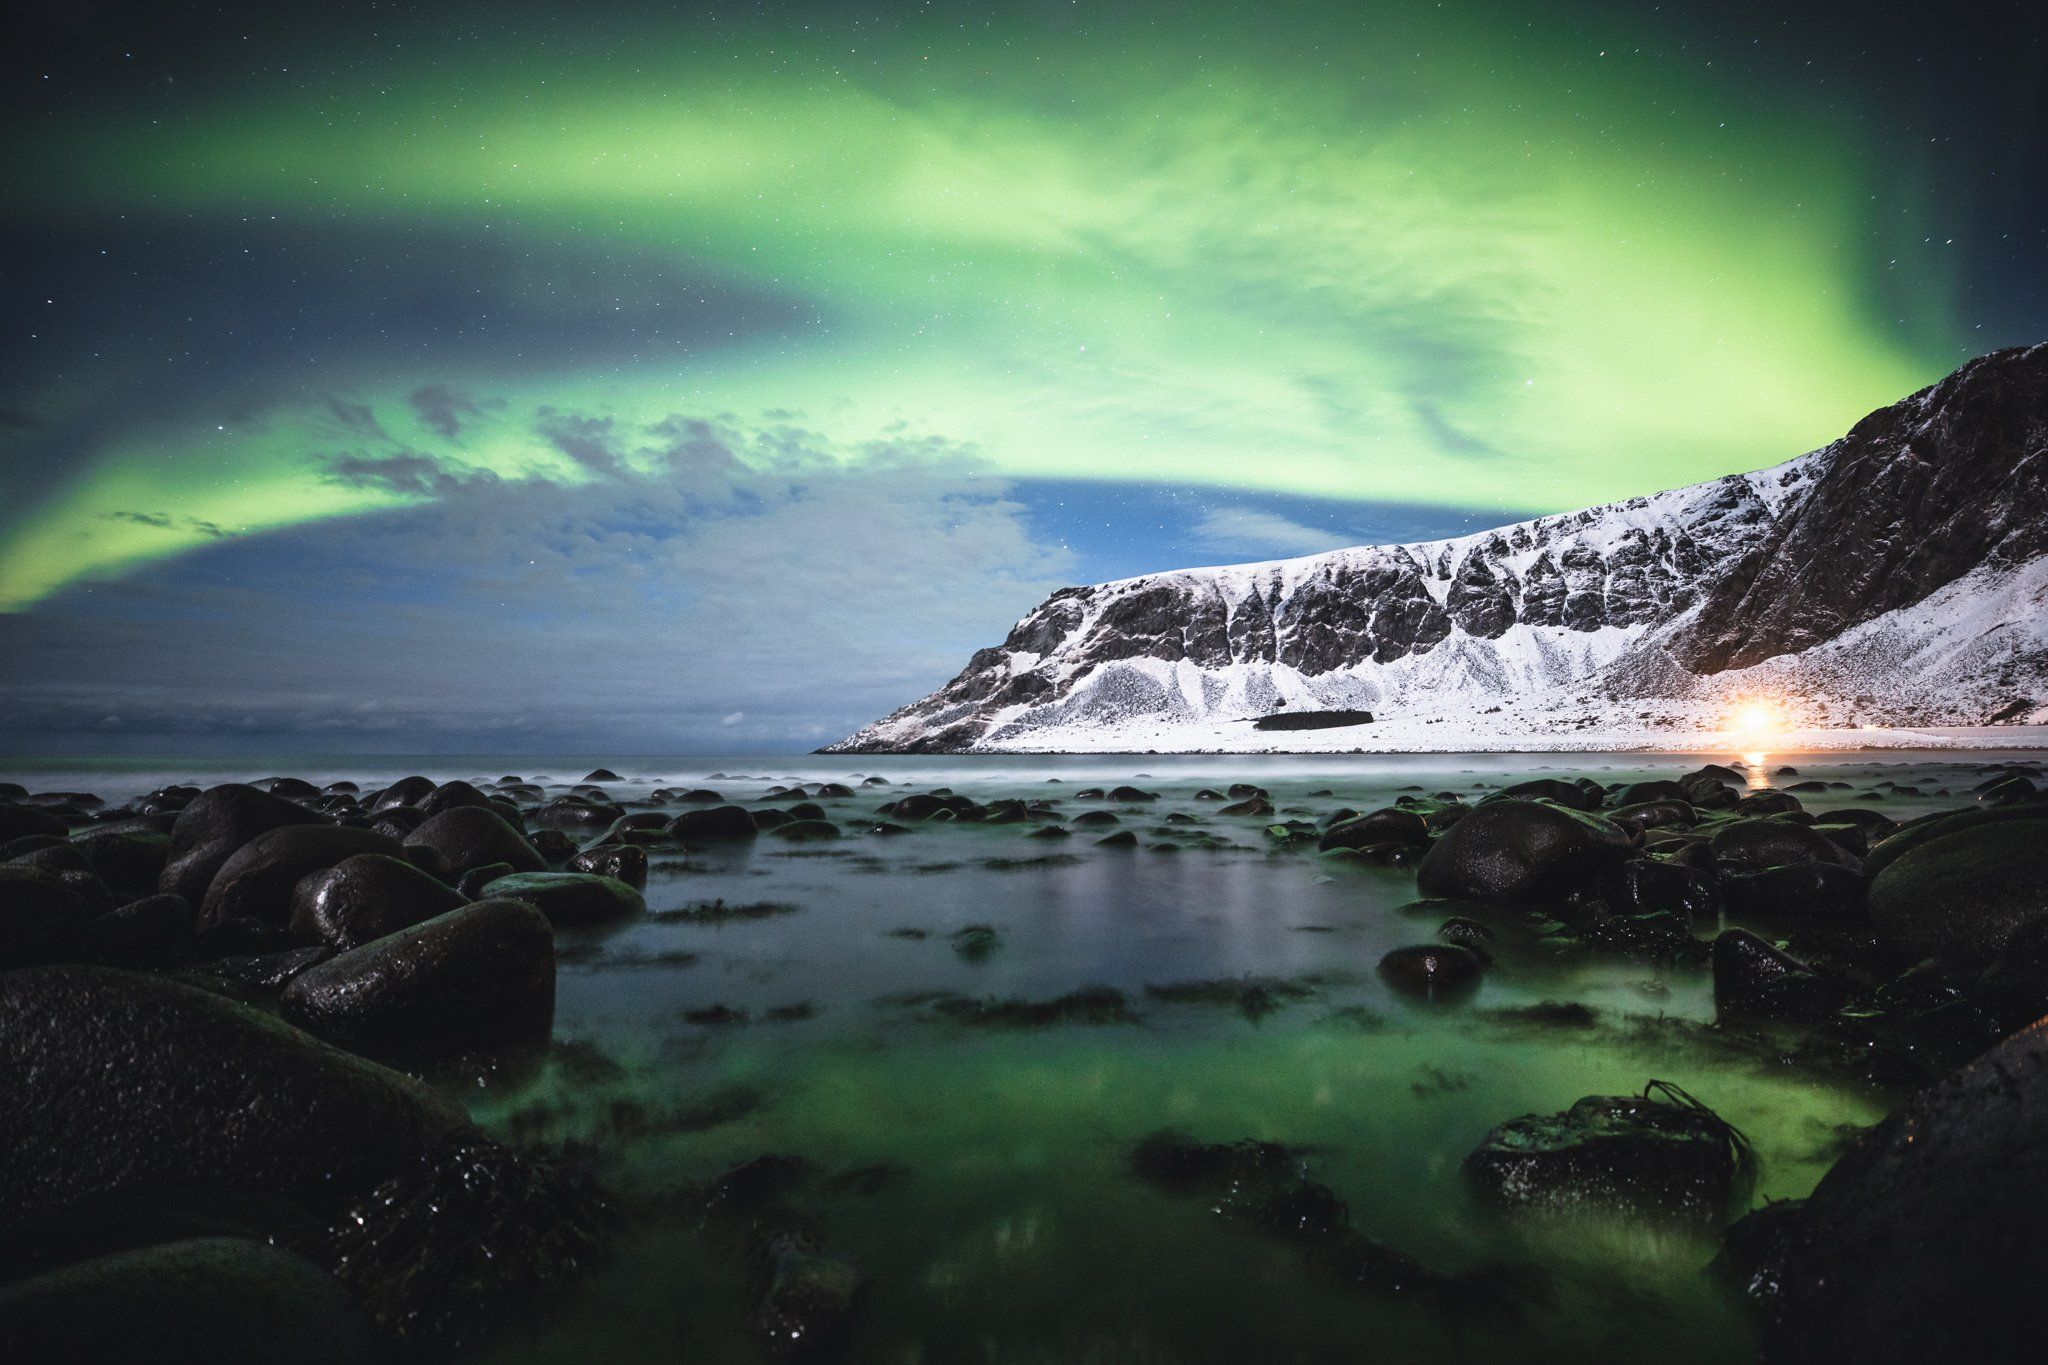 The Northern lights illuminate the sky, casting green reflections in the lake below.